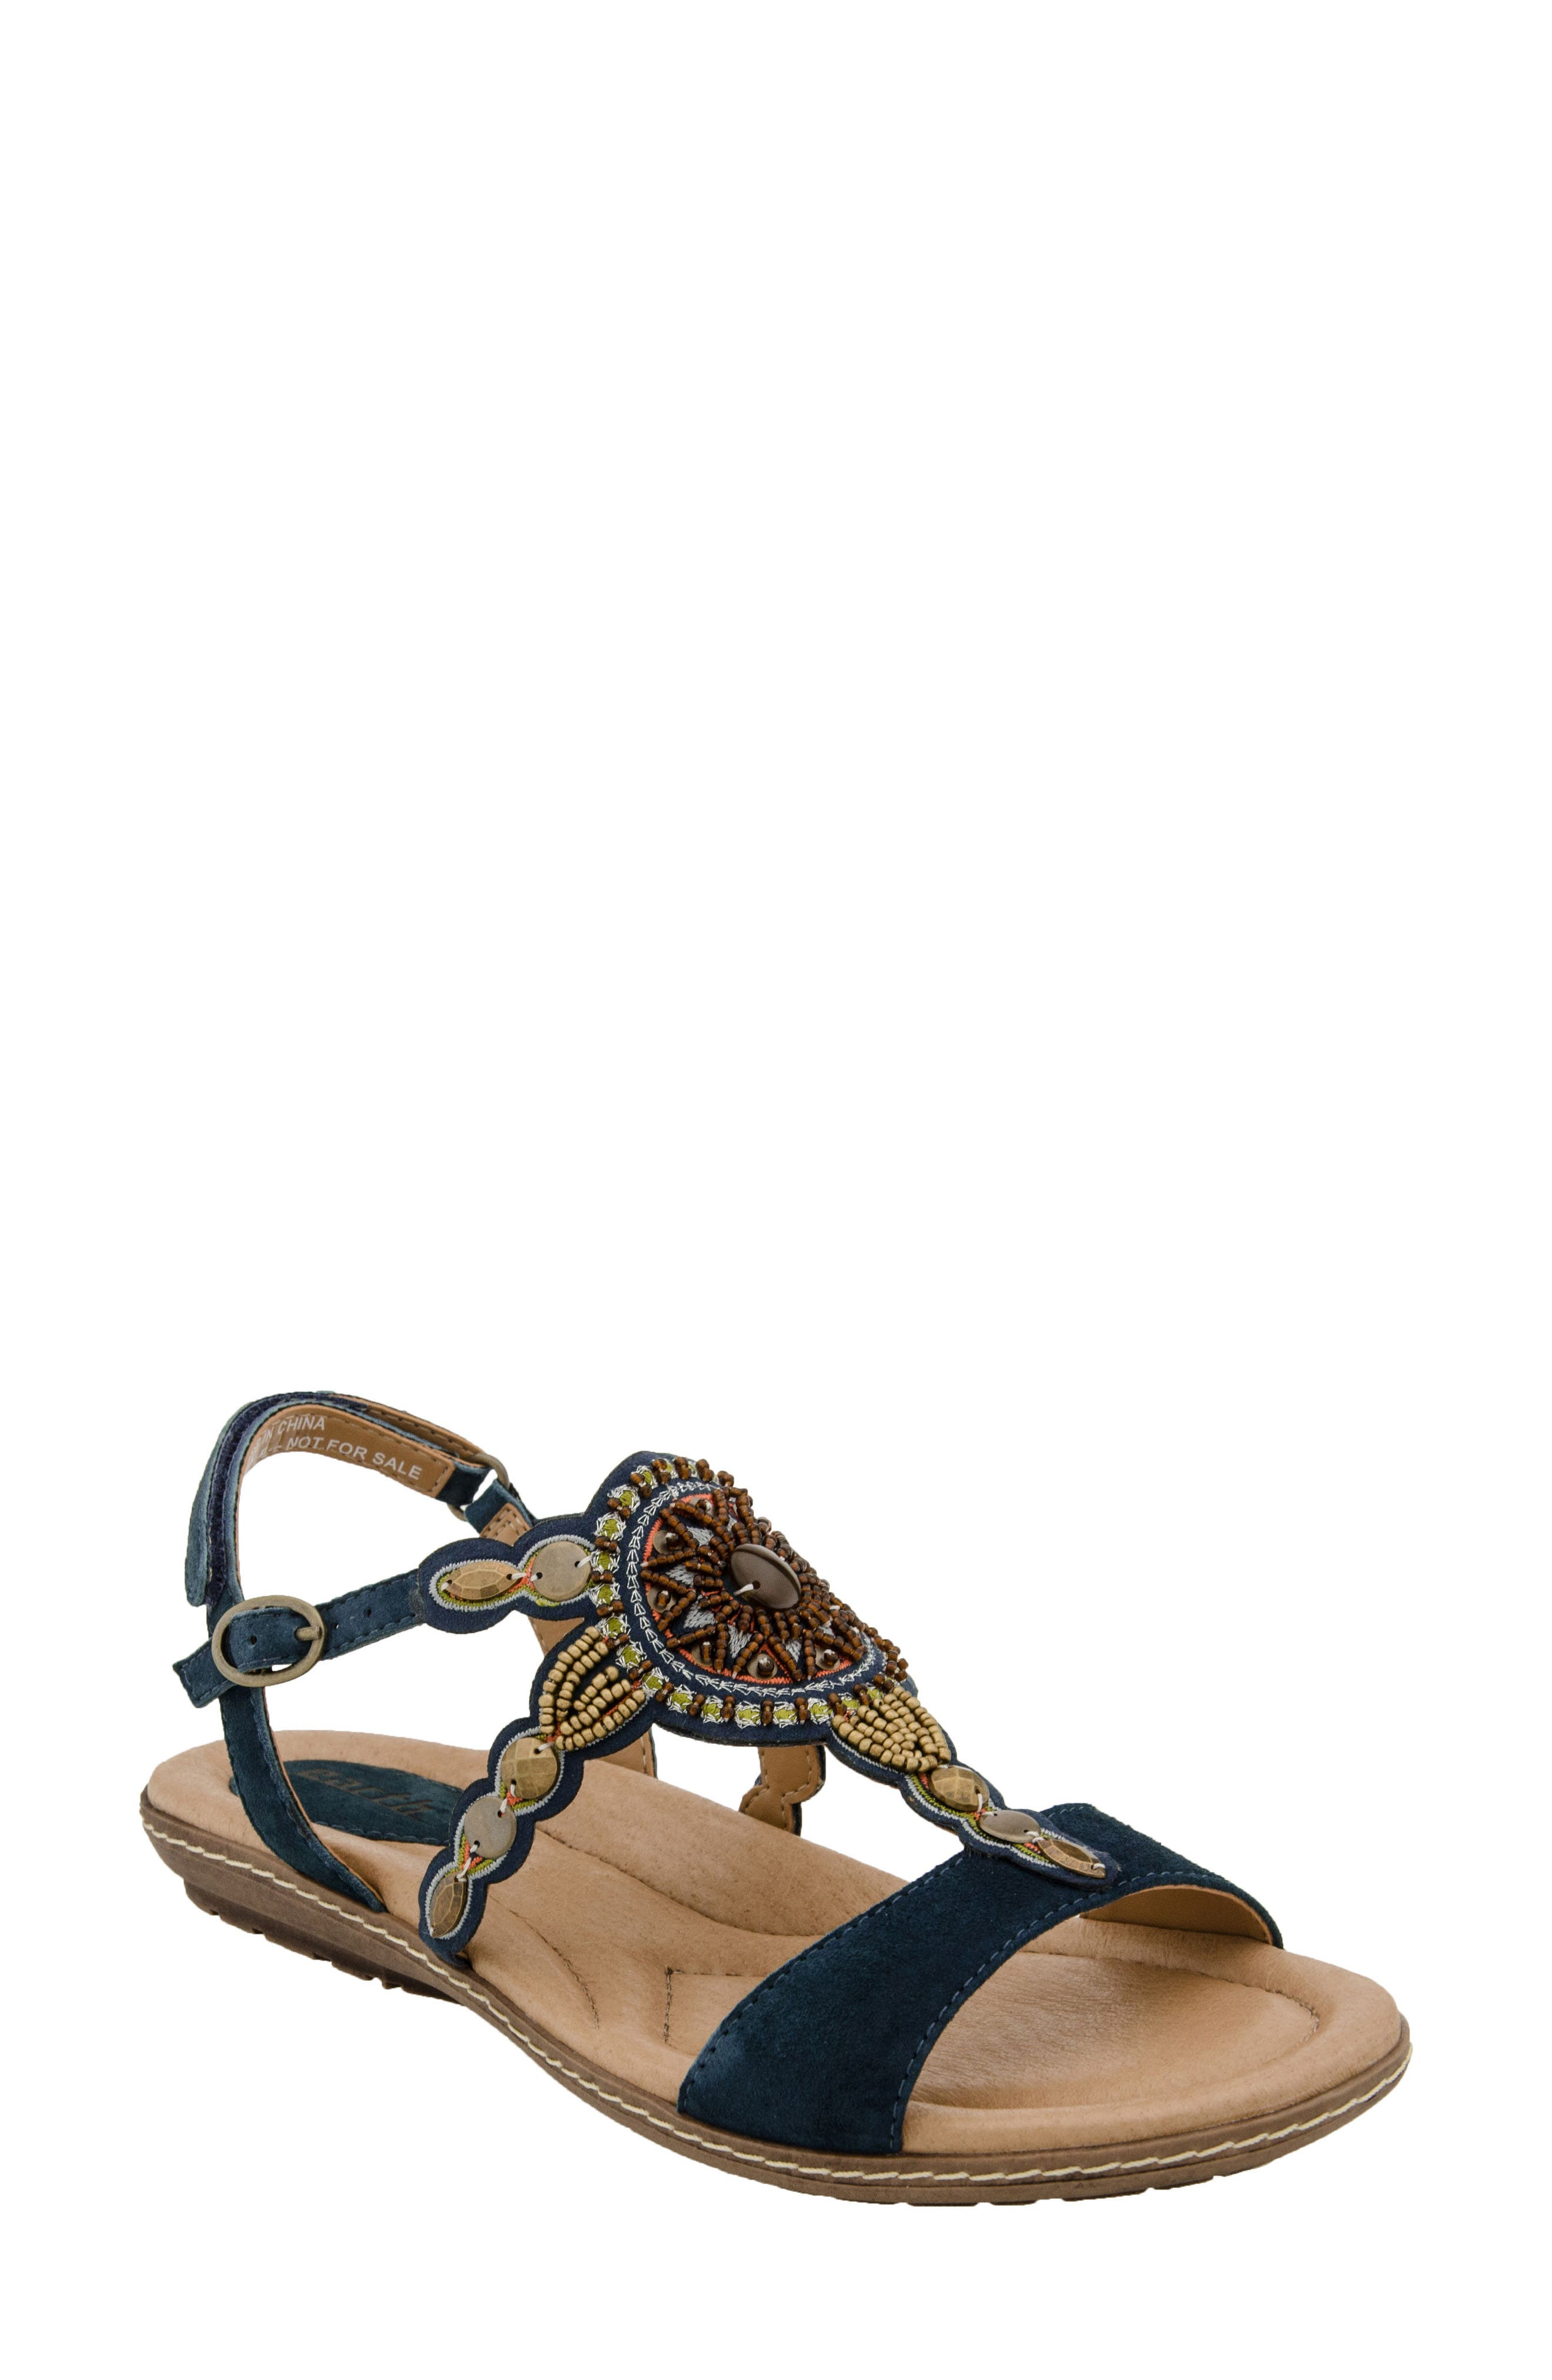 EARTH® Sunbeam Sandal